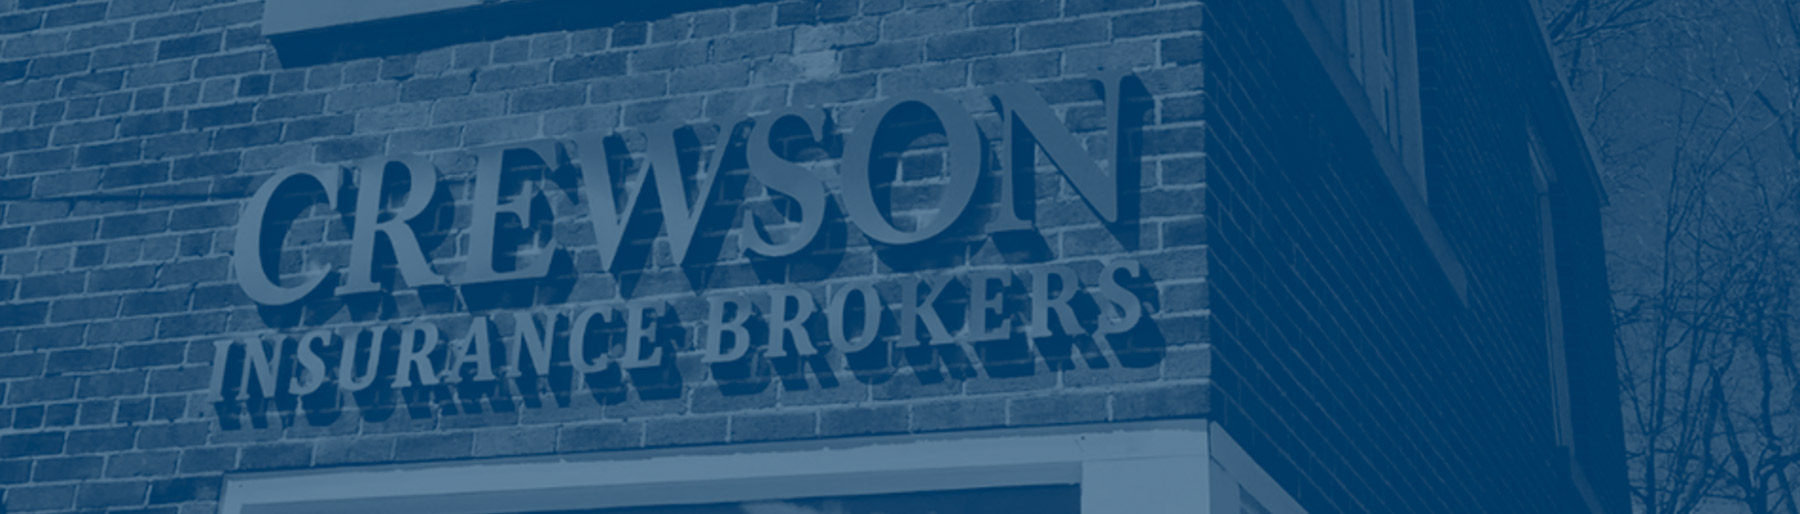 About Crewson Insurance